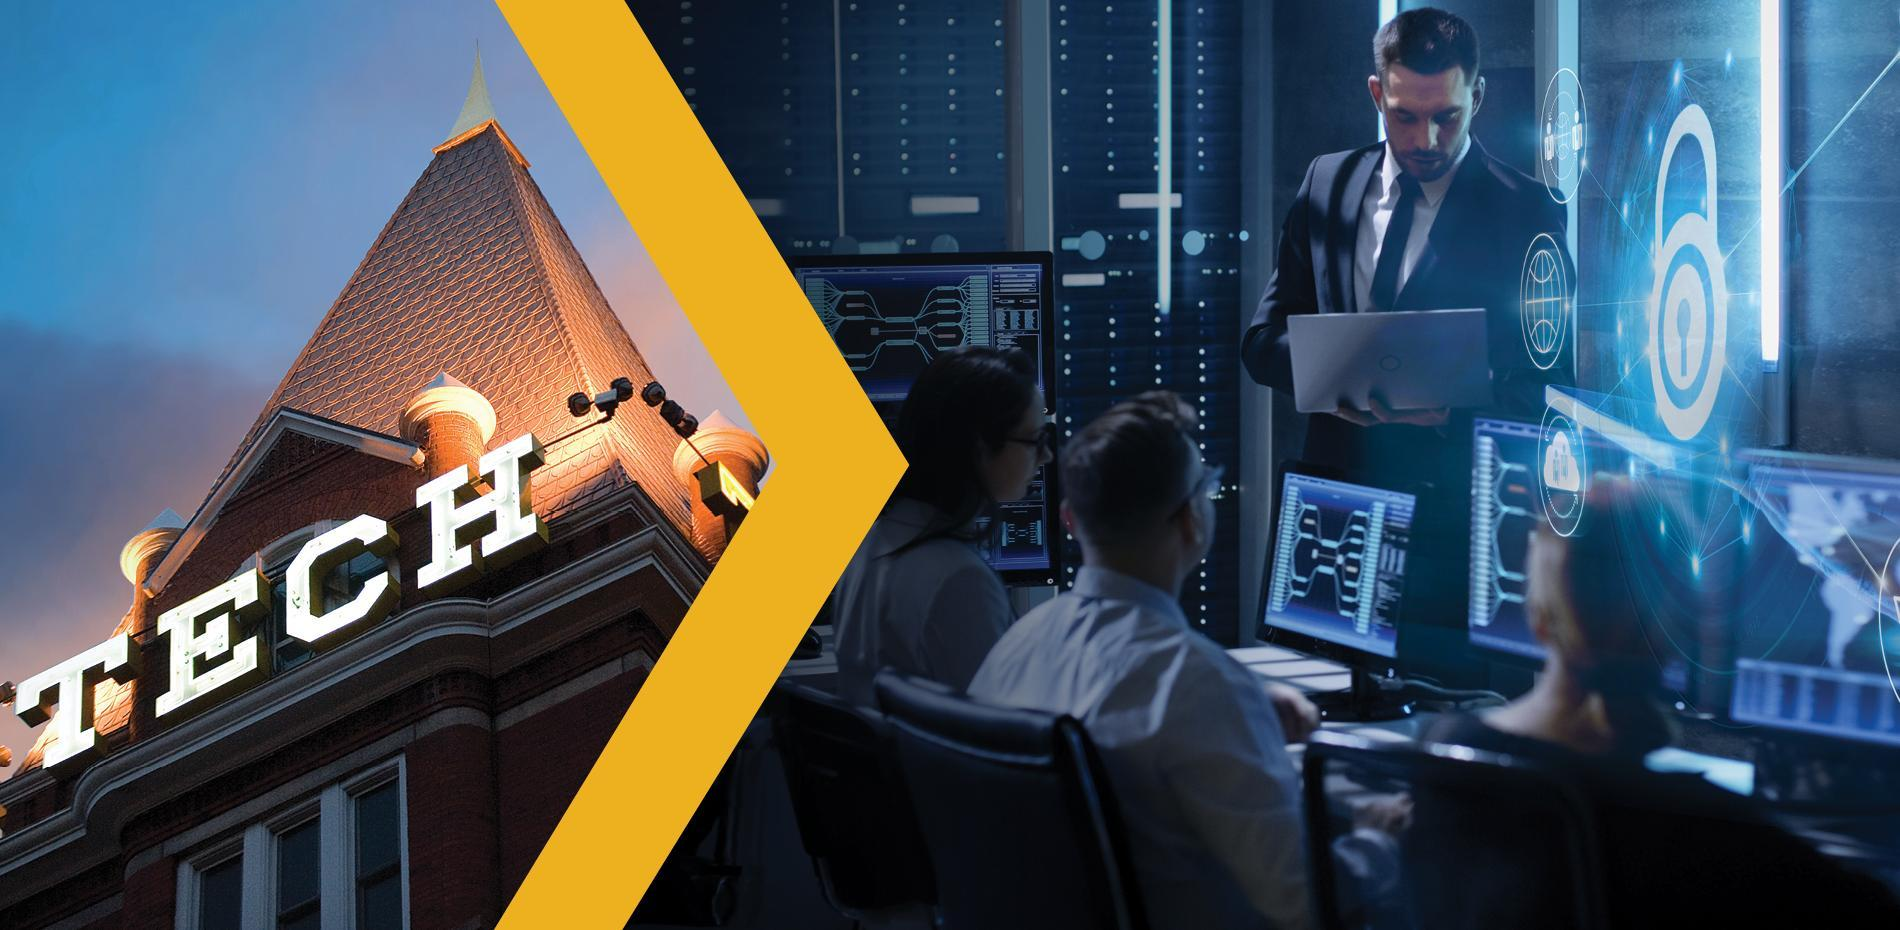 Tech Tower and group of cyber professionals working in front of computers